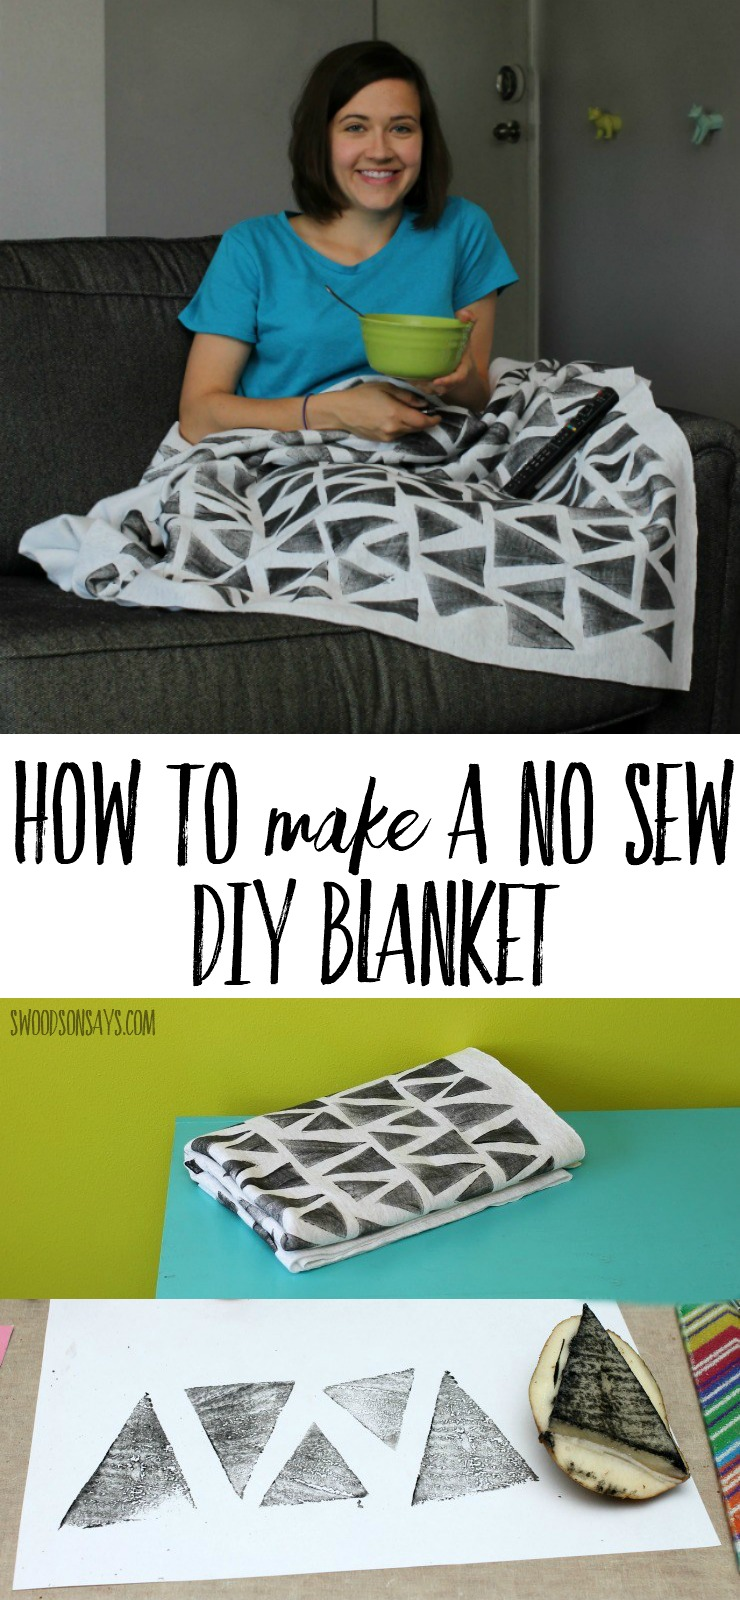 See how easy it is to make a no sew blanket, with this stamped sweatshirt version. A great tween craft idea diy gift for the couch potato in your life, blankets are so much fun to make. #diyblanket